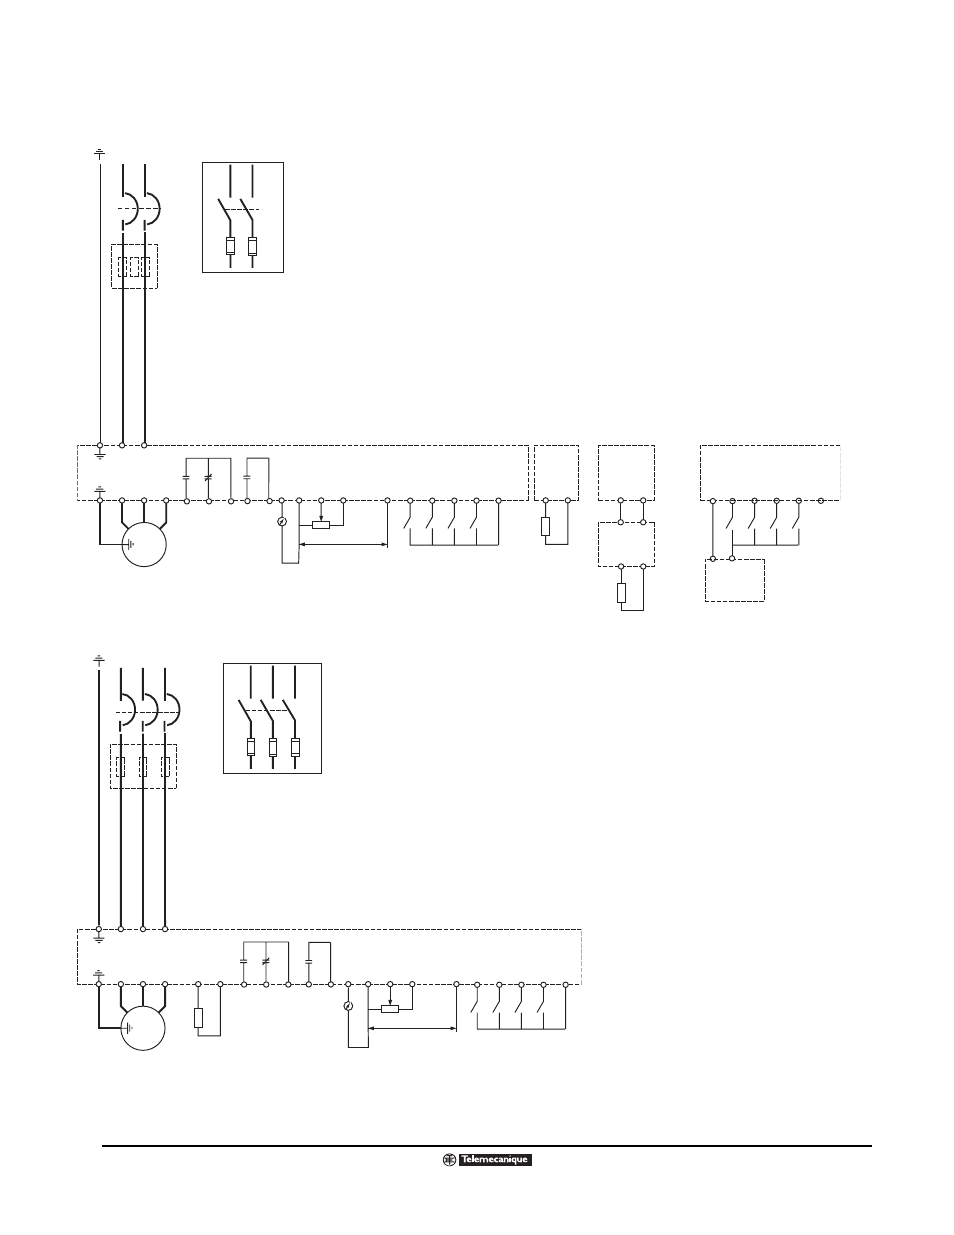 schneider electric altivar 58 trx page108 altivar, 58 trx ac drives, wiring recommendations schneider altivar 58 wiring diagram at edmiracle.co